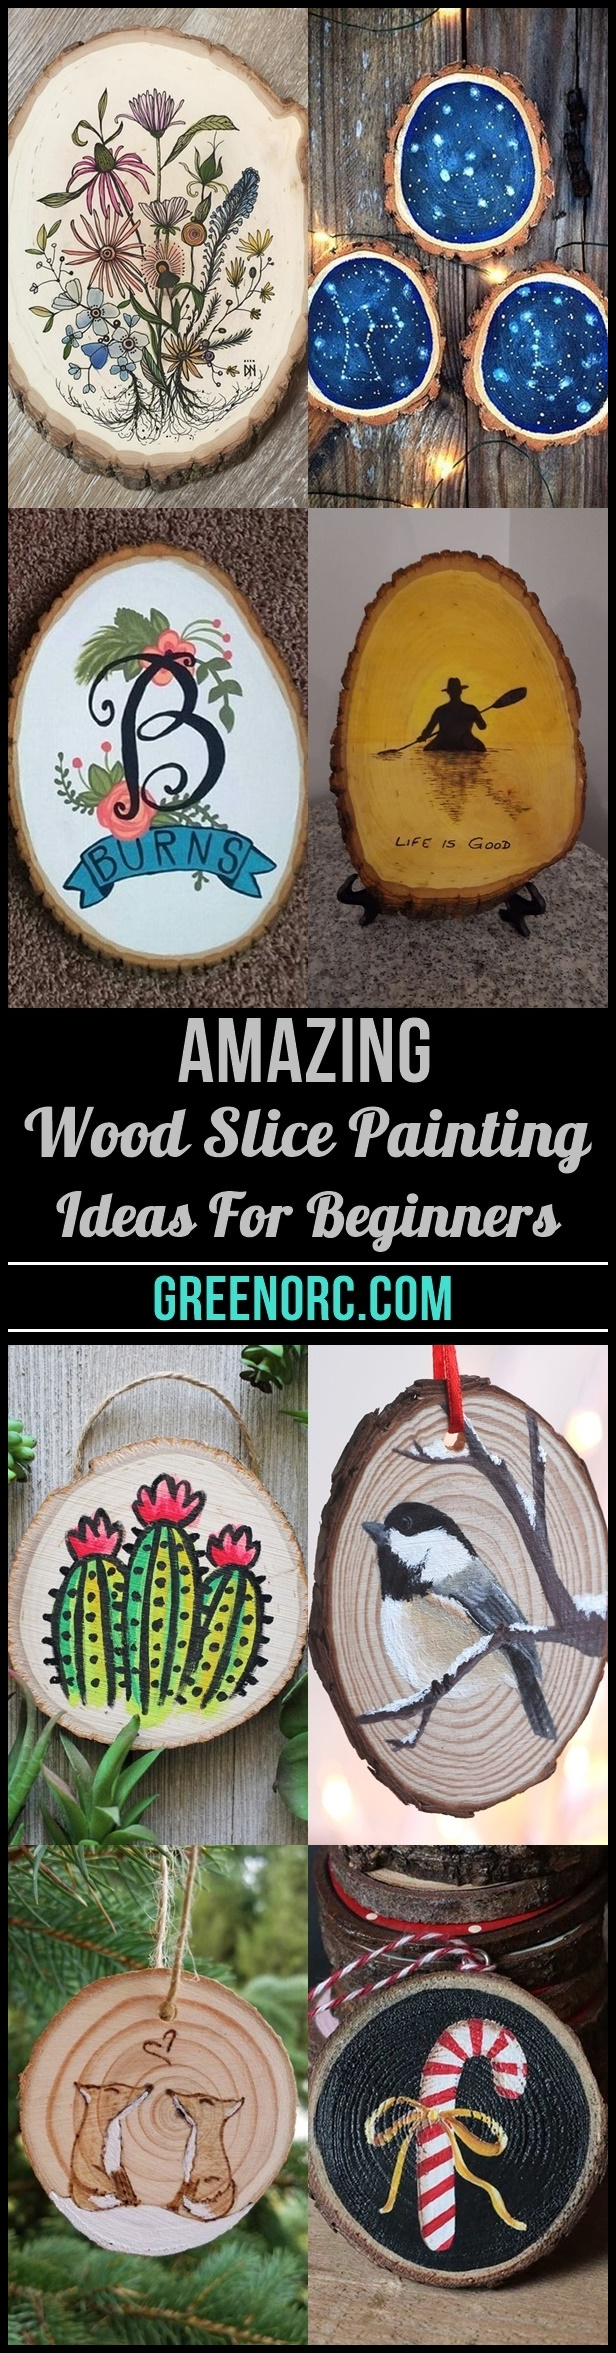 40 Amazing Wood Slice Painting Ideas For Beginners Greenorc